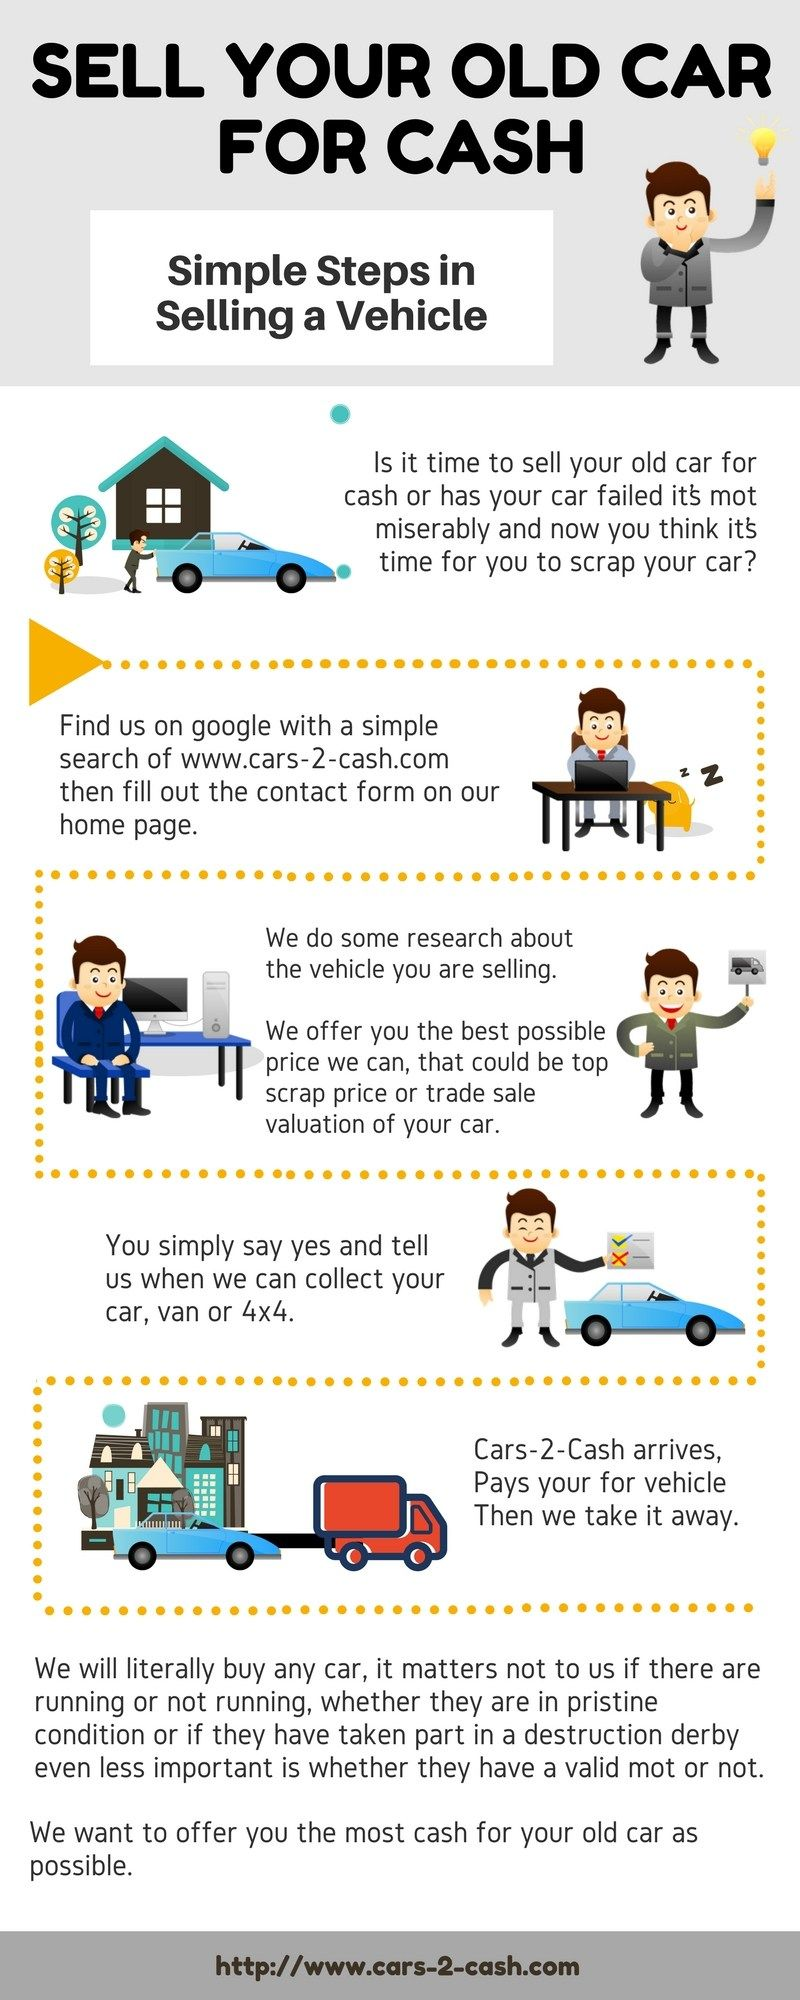 Sell Your Old Car For Cash https://www.liveinfographic.com/i/sell ...